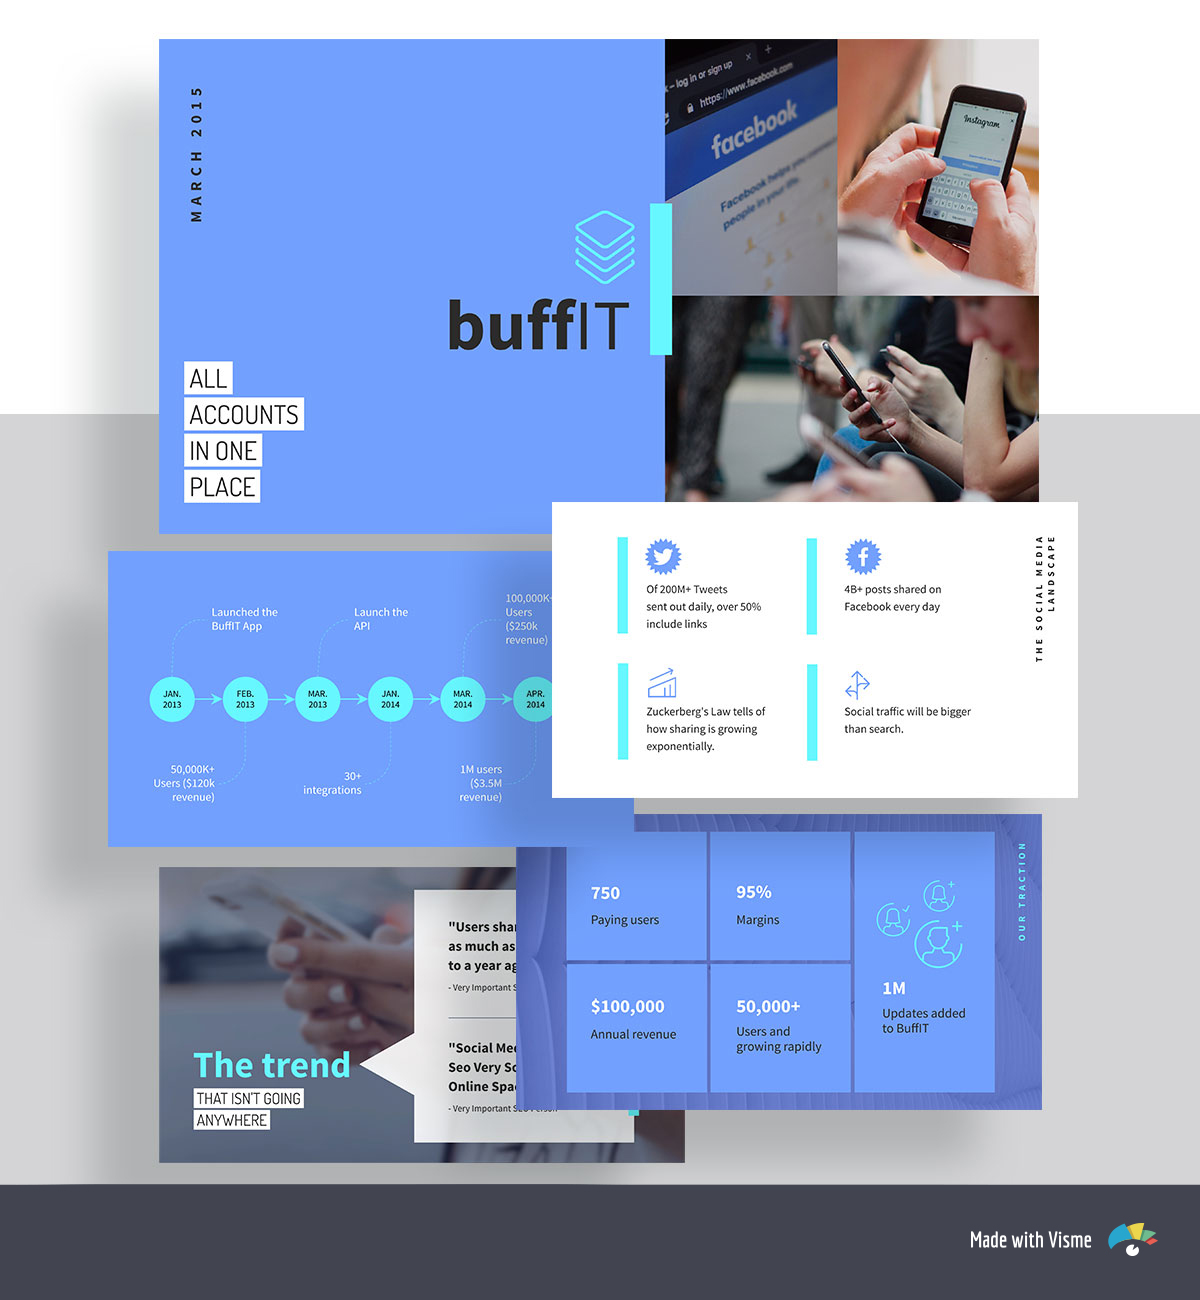 pitch deck template - buffer buffit